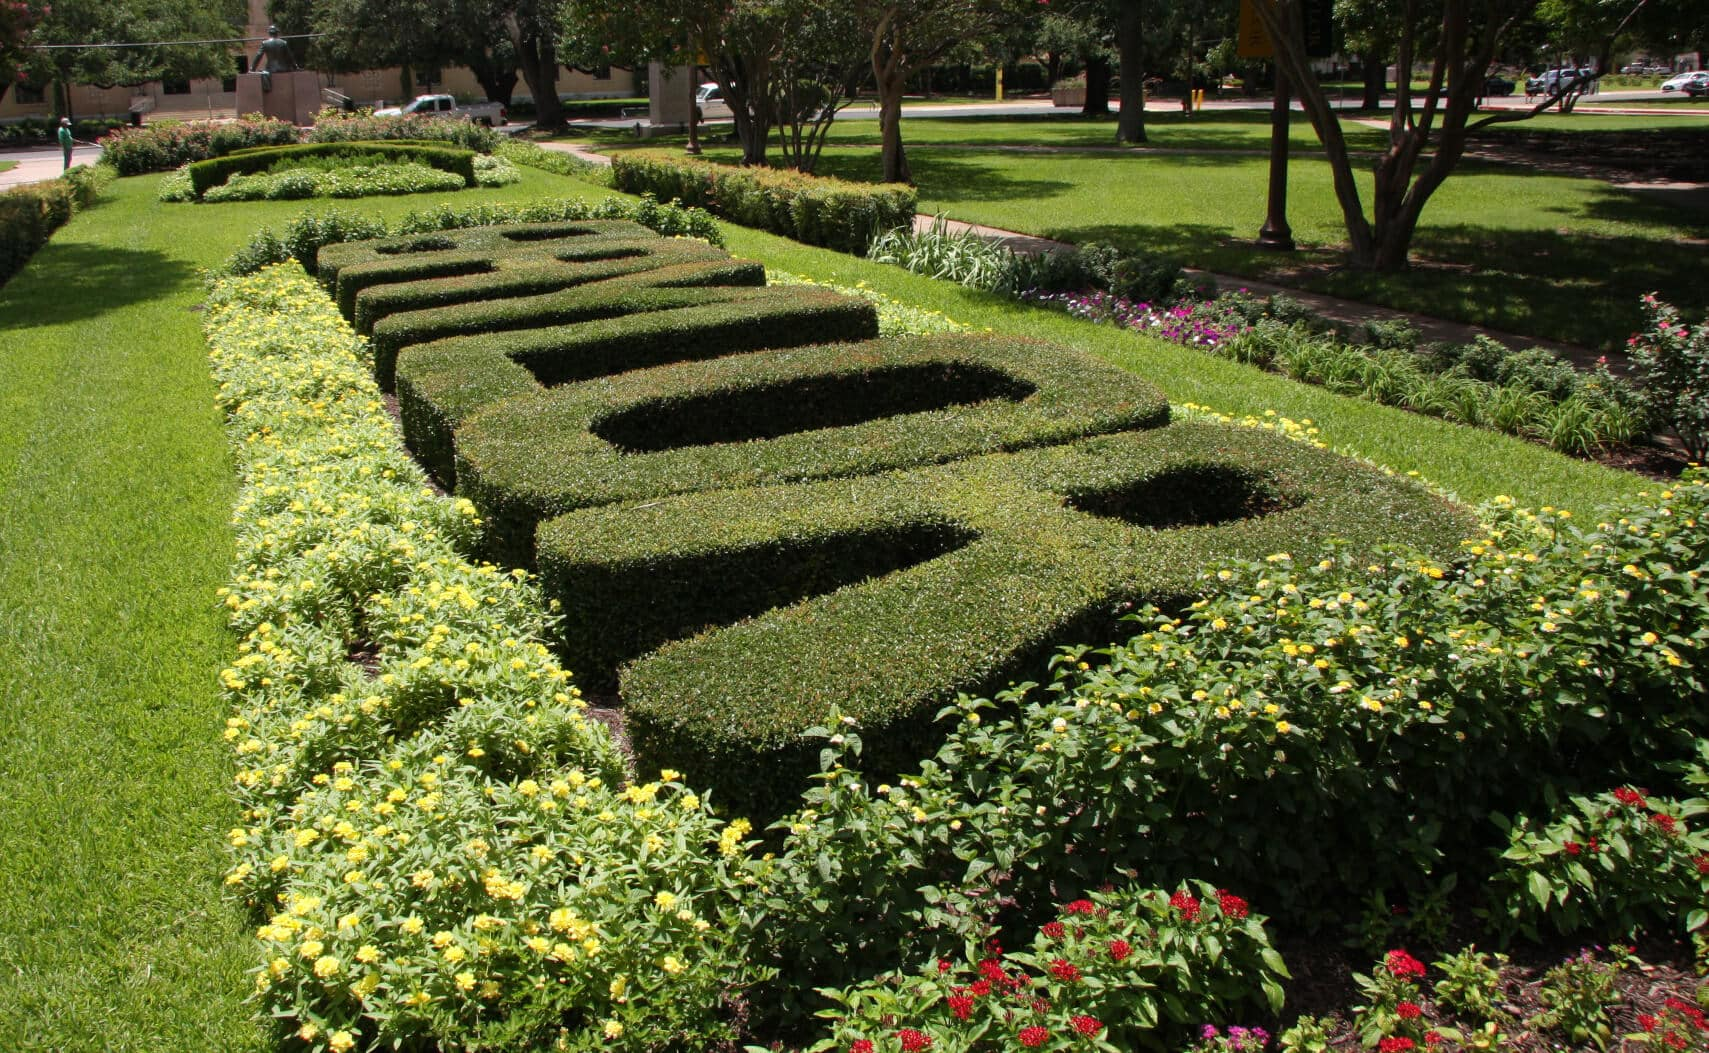 Landscape Design and Maintenance at Baylor University in Waco, Texas